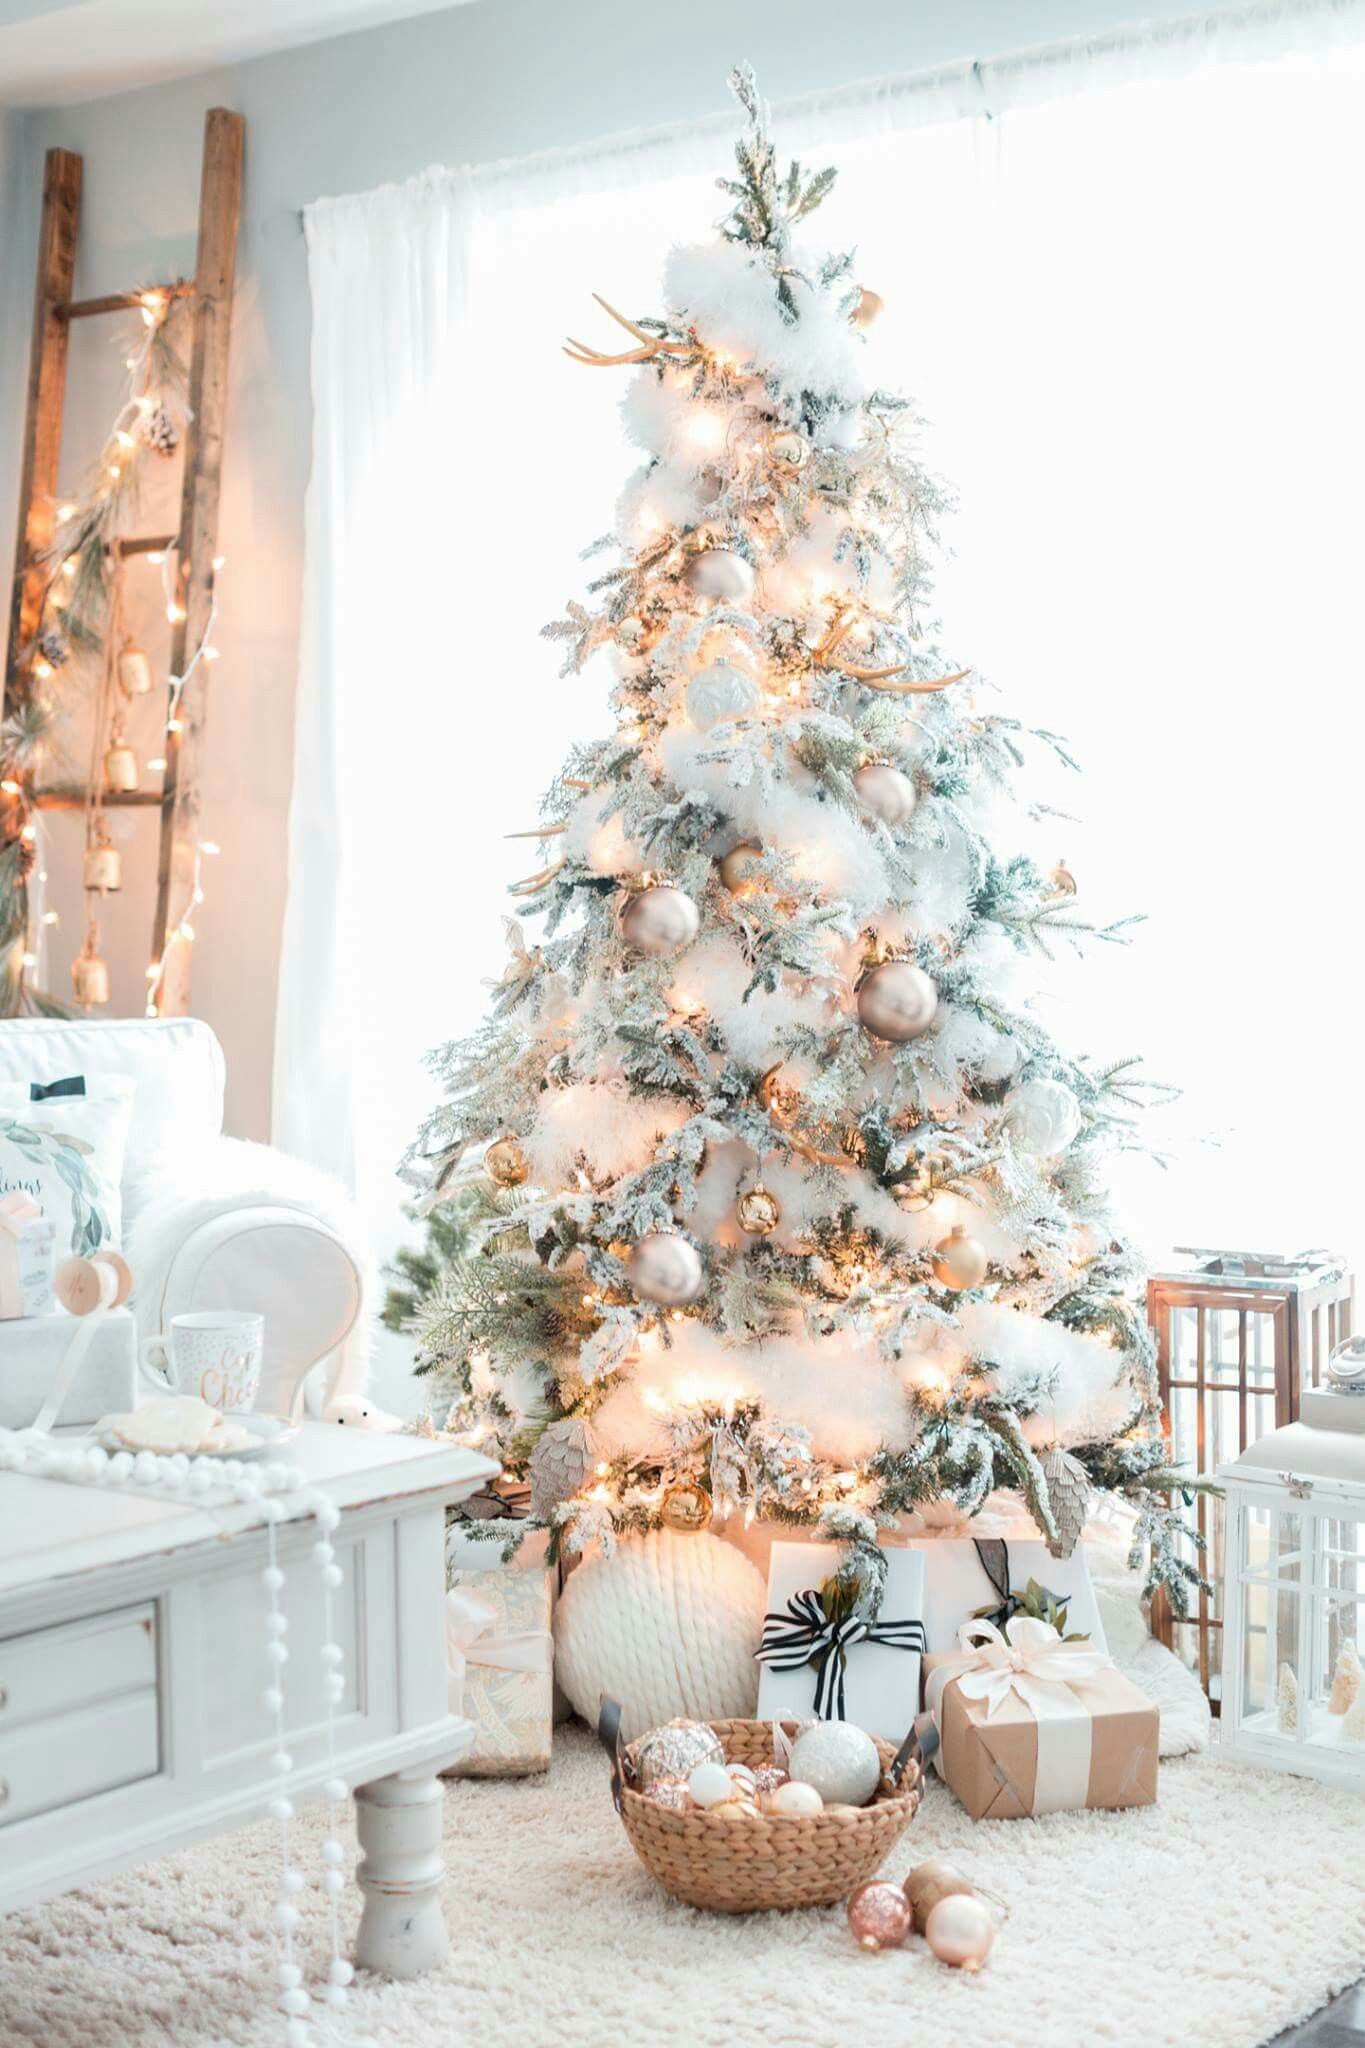 Pin by Chris Thompson on Christmas White & Silver | Pinterest | Pink ...